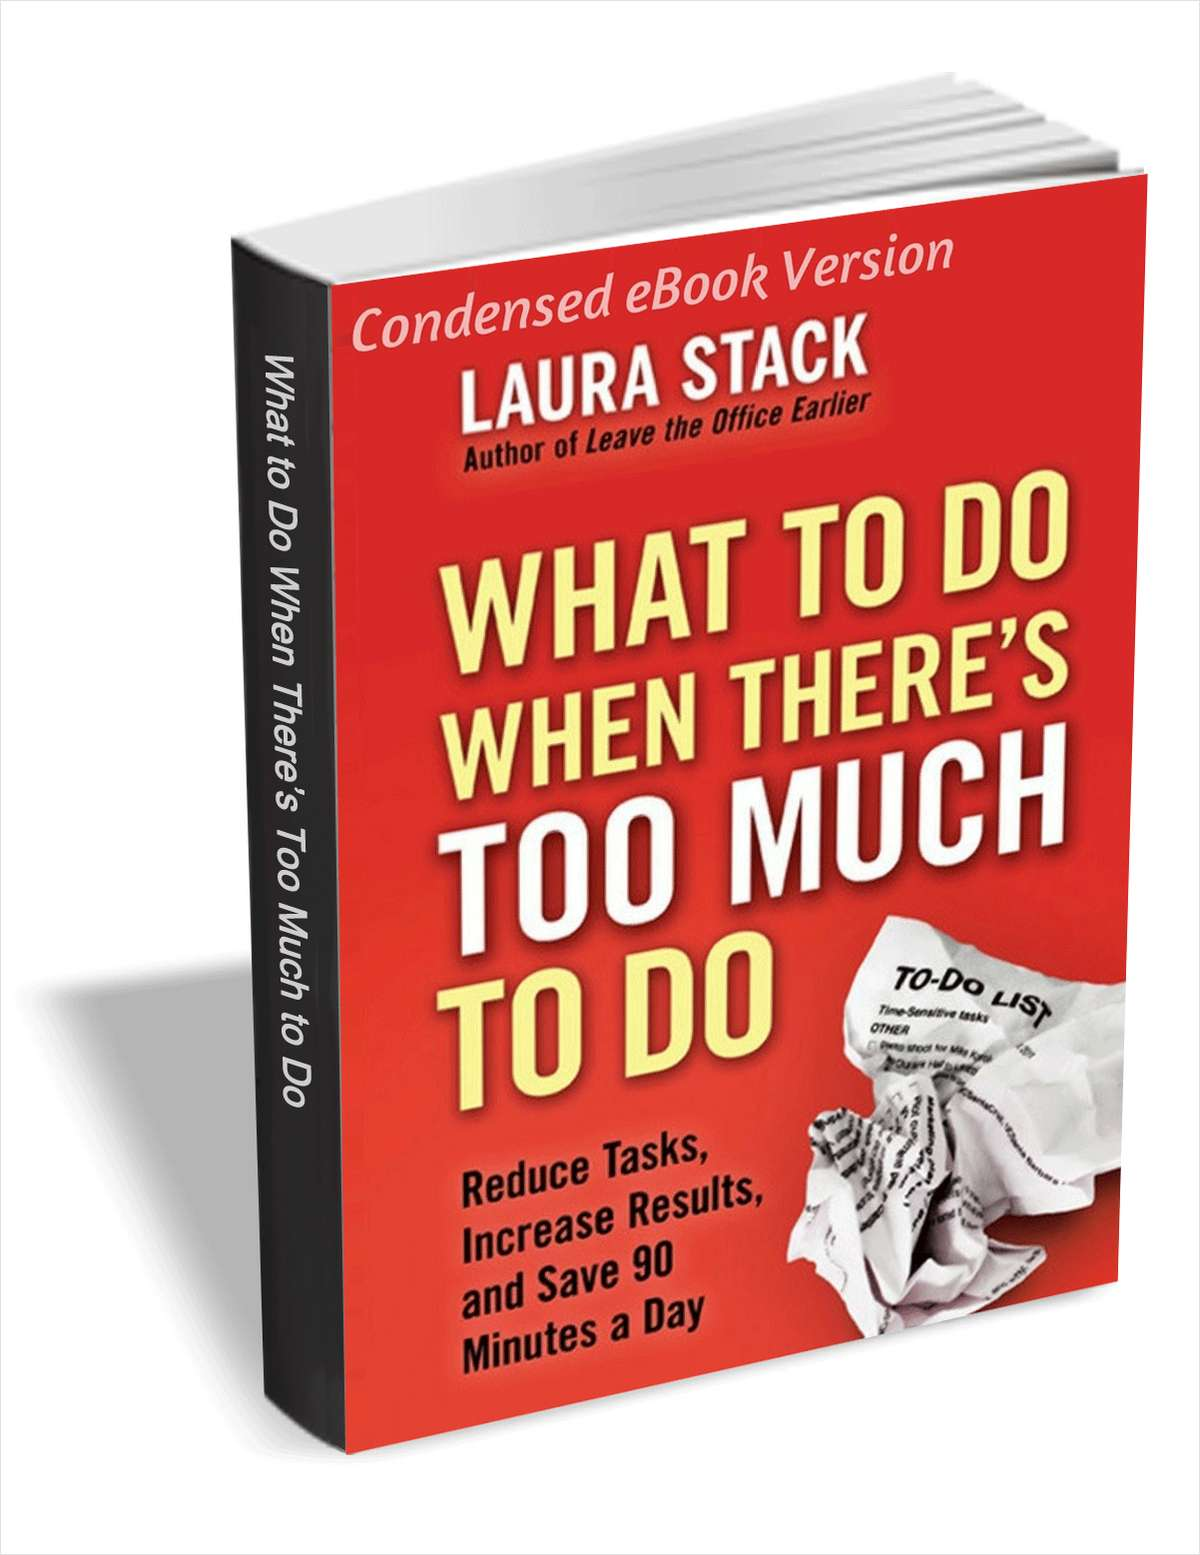 What to Do When There's Too Much to Do - Reduce Tasks, Increase Results, and Save 90 Minutes a Day (Condensed eBook Version)